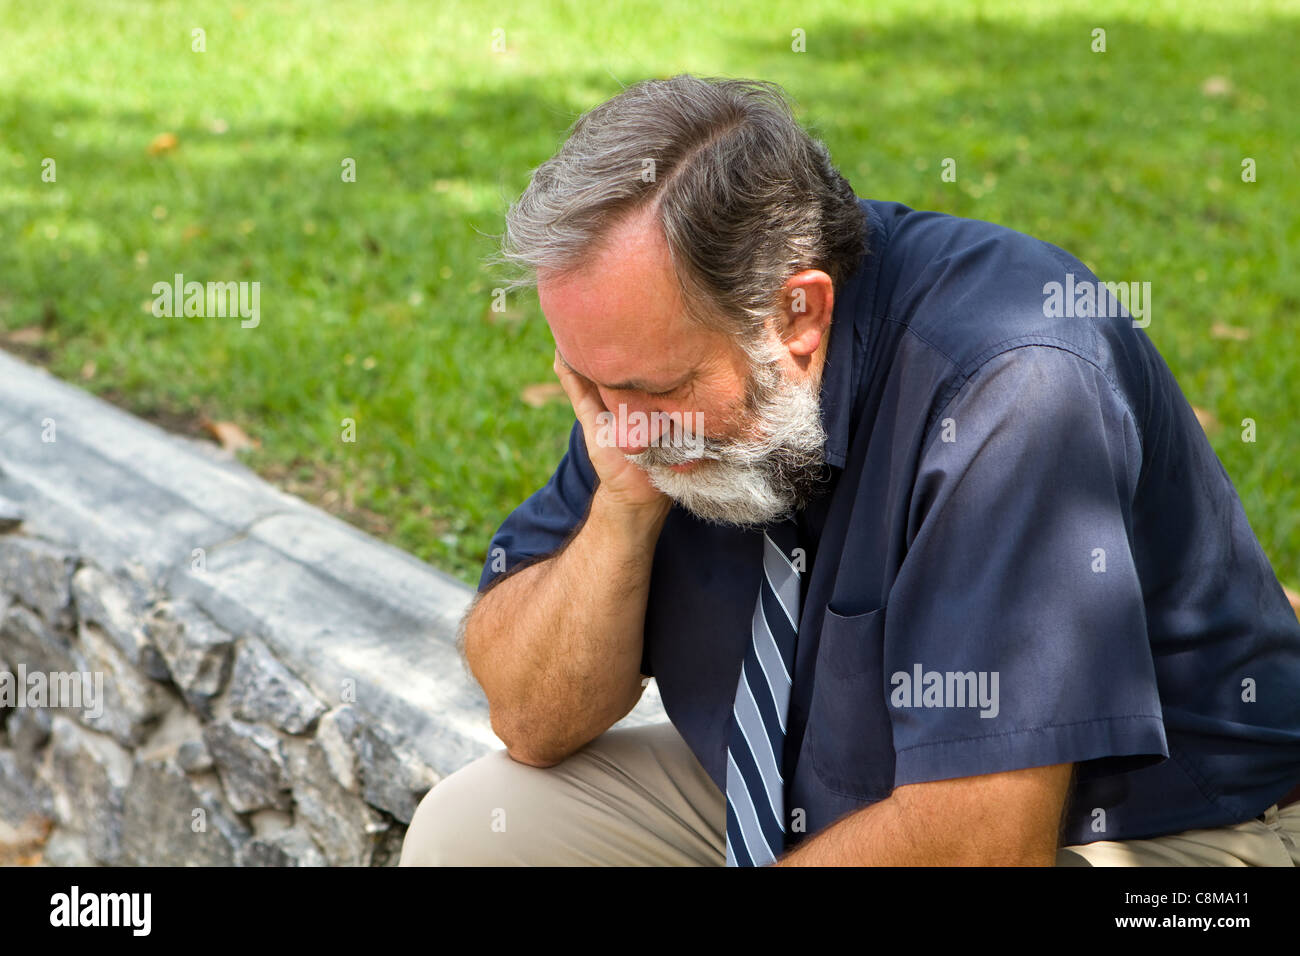 Businessman depressed by economic conditions sits melancholic in a park with his head in his hand. - Stock Image